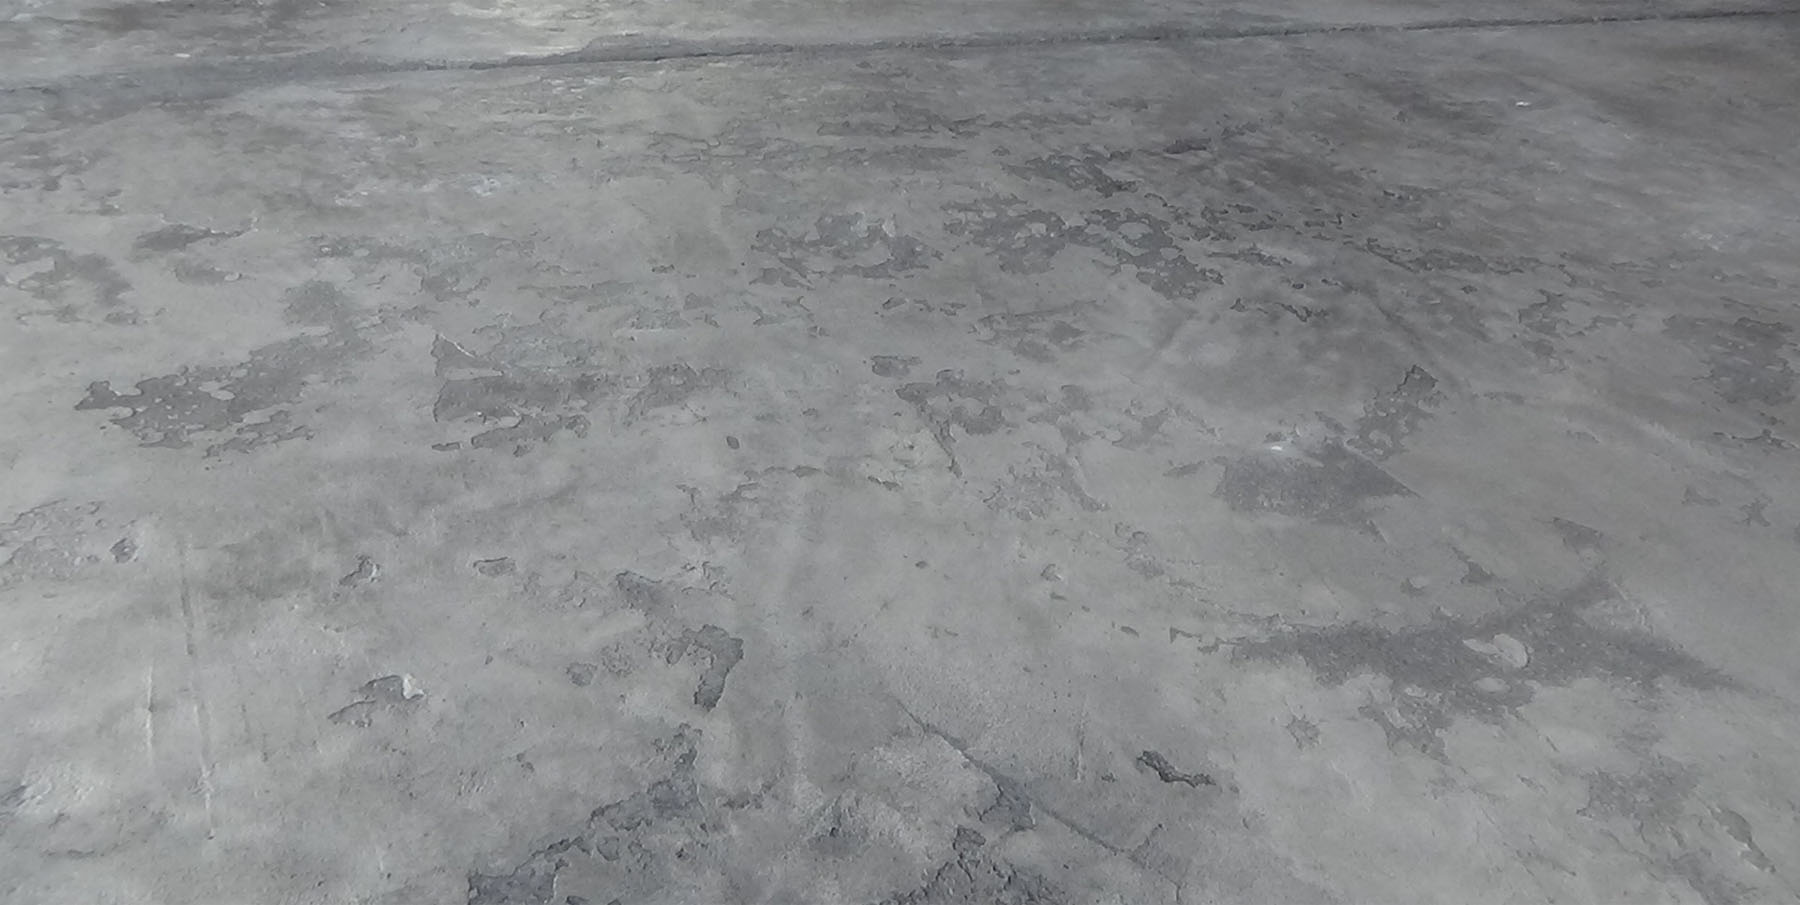 A concrete slab with severe discoloration.